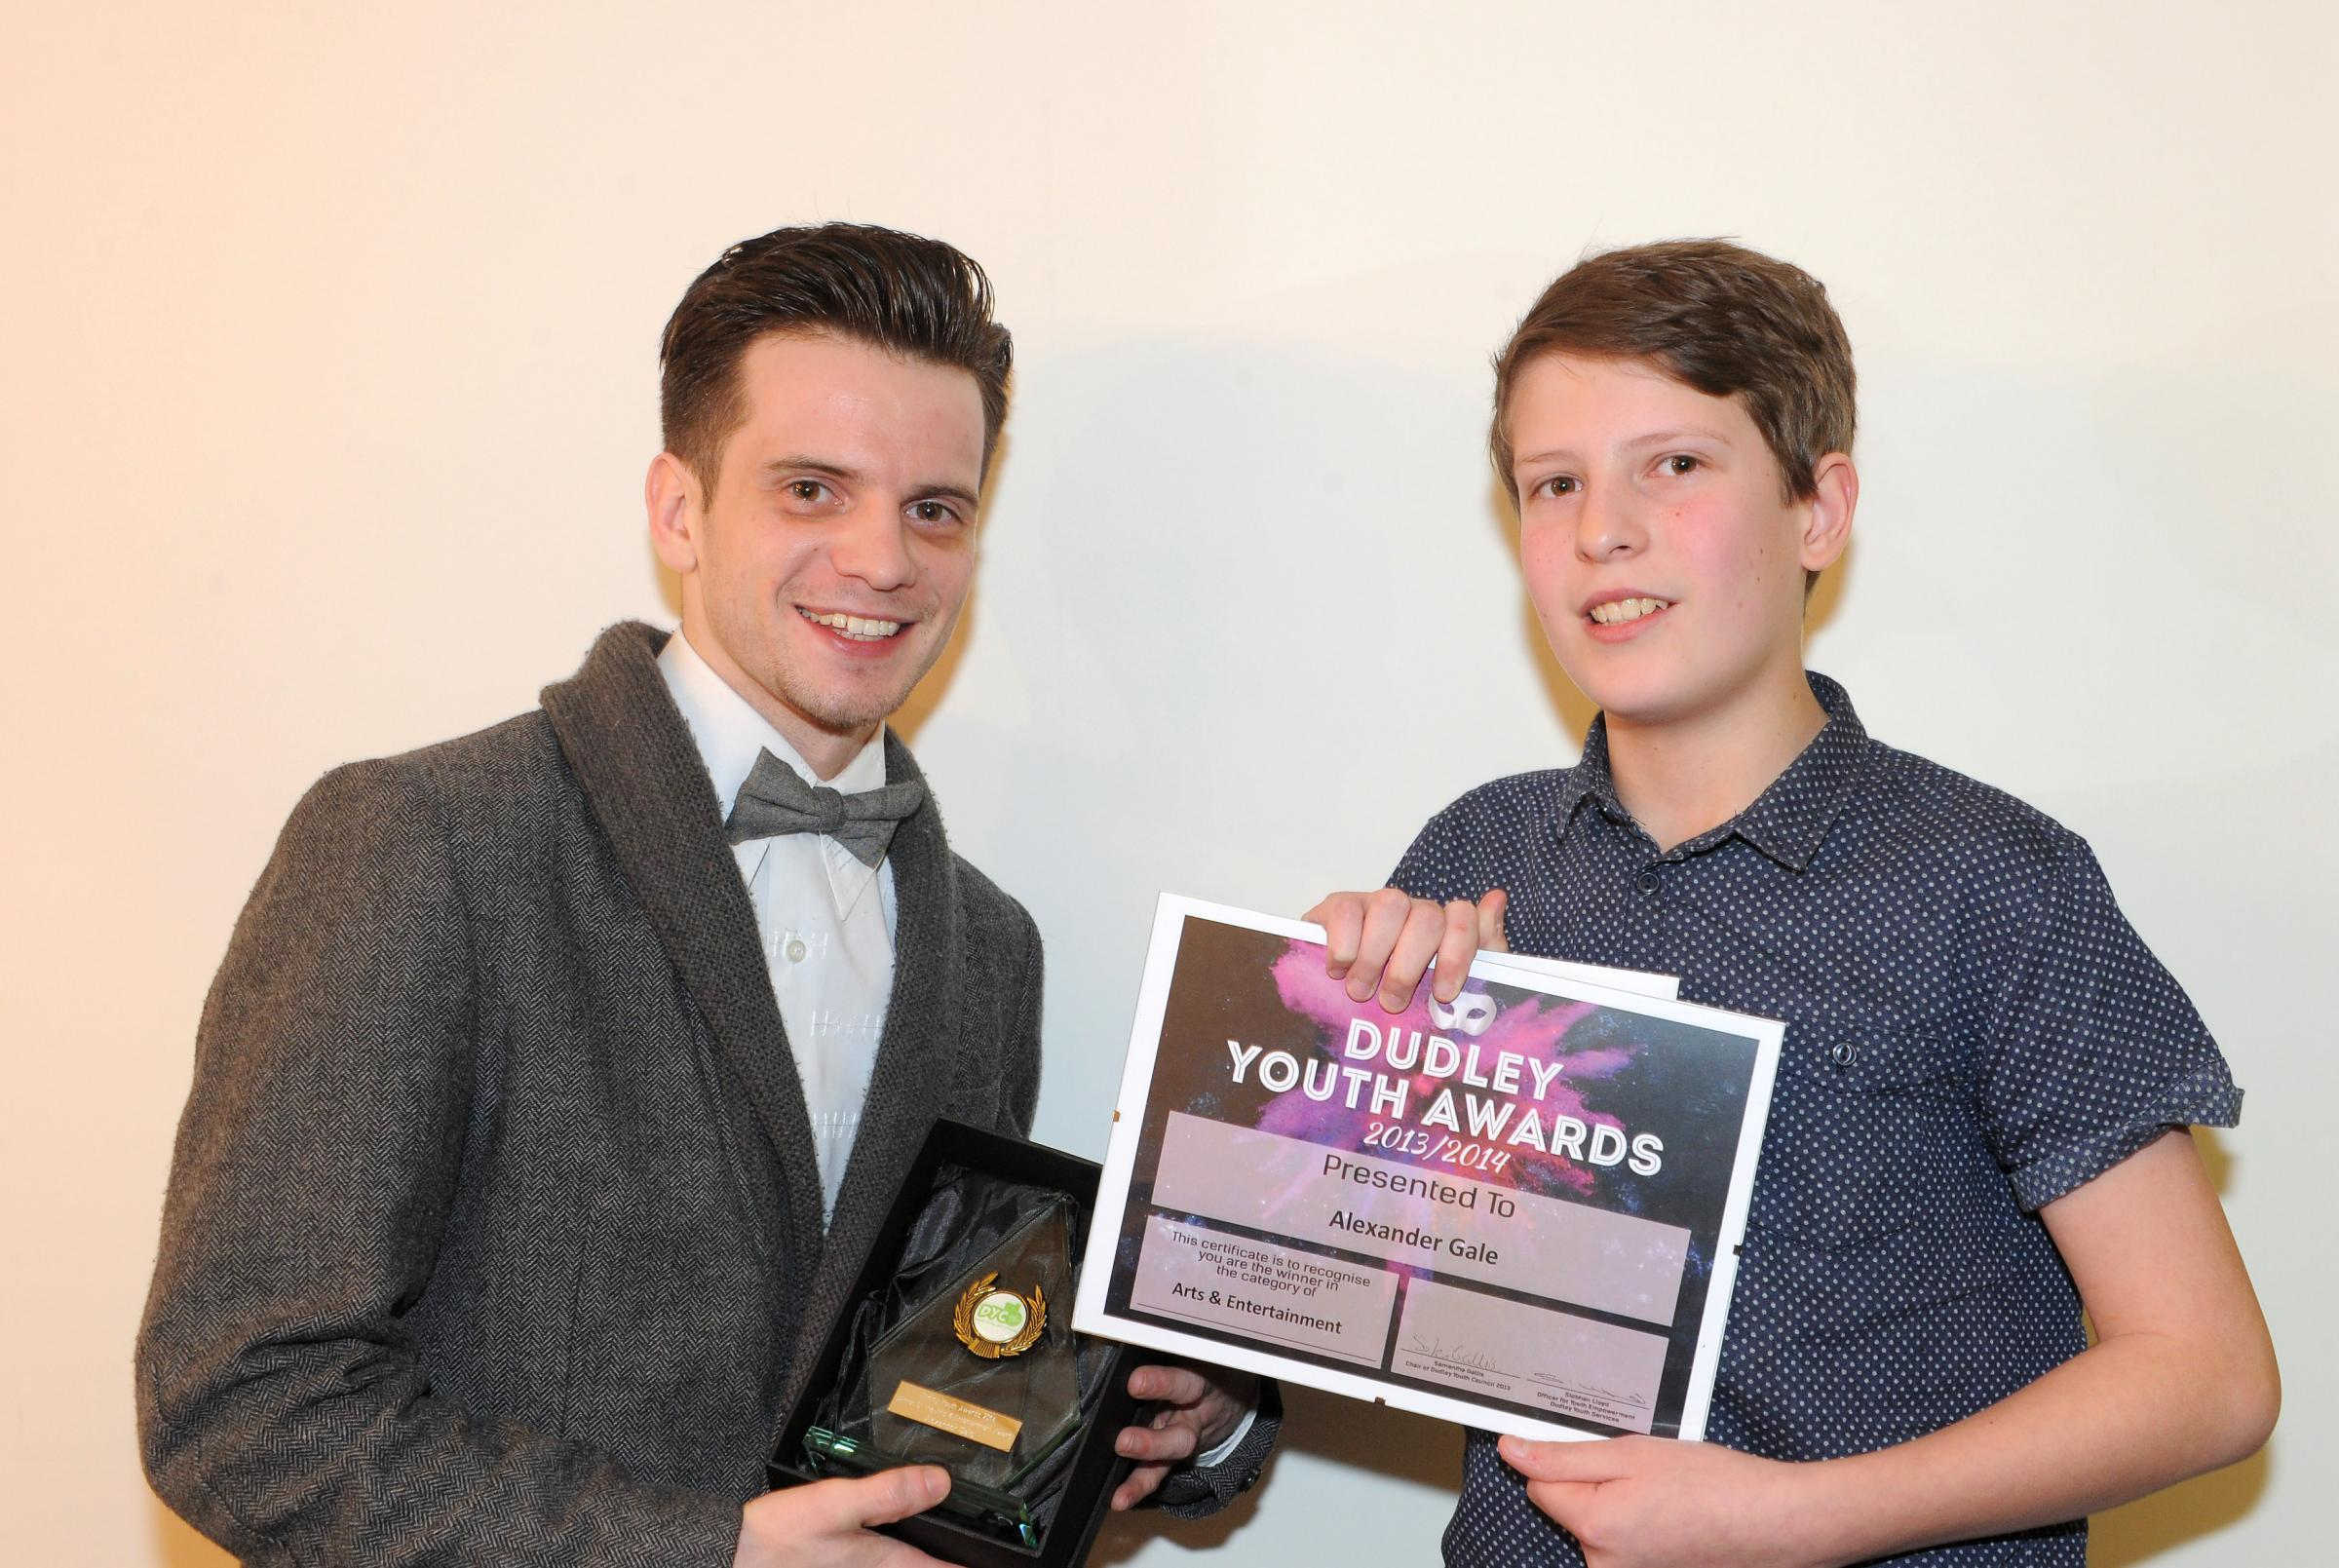 Redhill student Alexander Gale, right, being presented with his award by Matt Windle, Birmingham's young poet laureate in 2007/8 who works with young people across the borough.